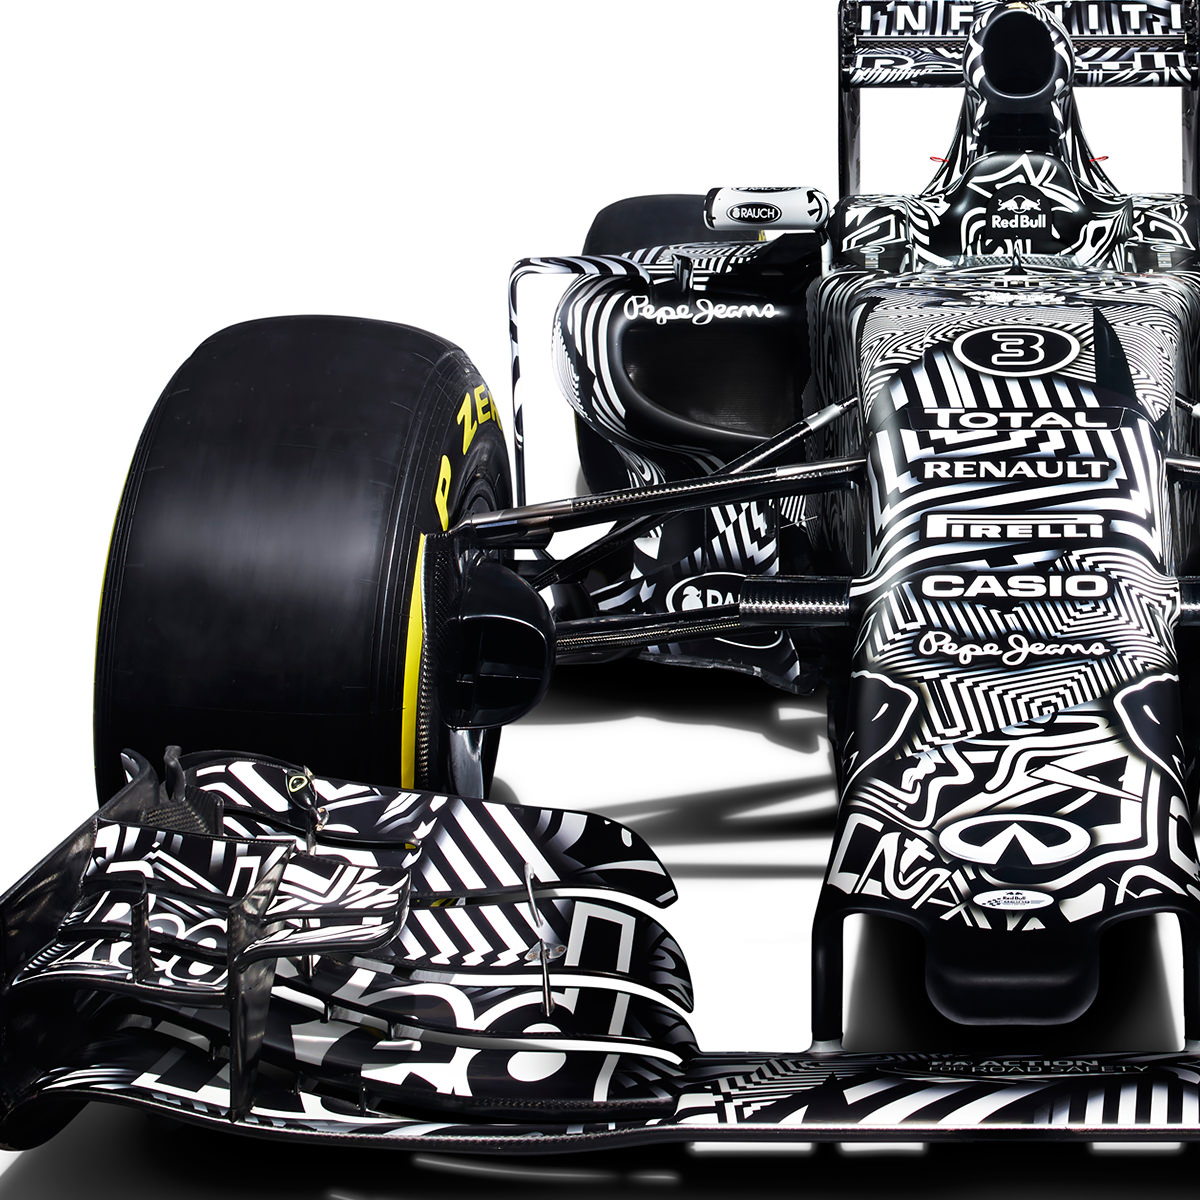 Red Bull Rb11 Red Bull Rock Jerez With Psychedelic Test Livery Black And